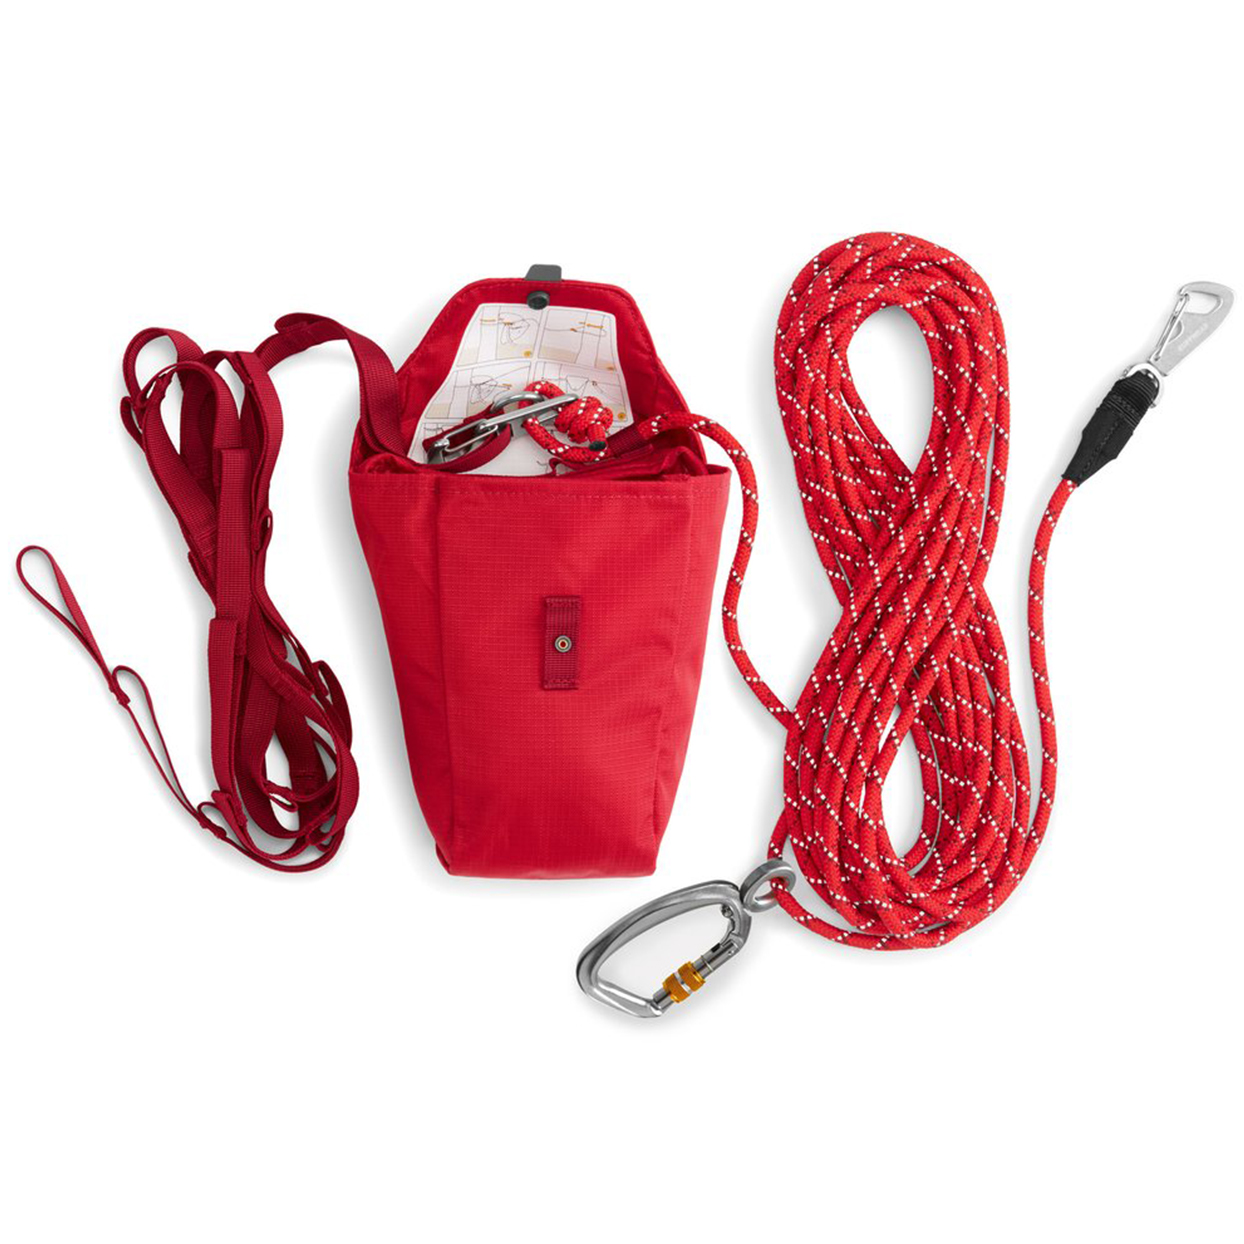 red ruffwear knot-a-hitch campsite dog-hitching system